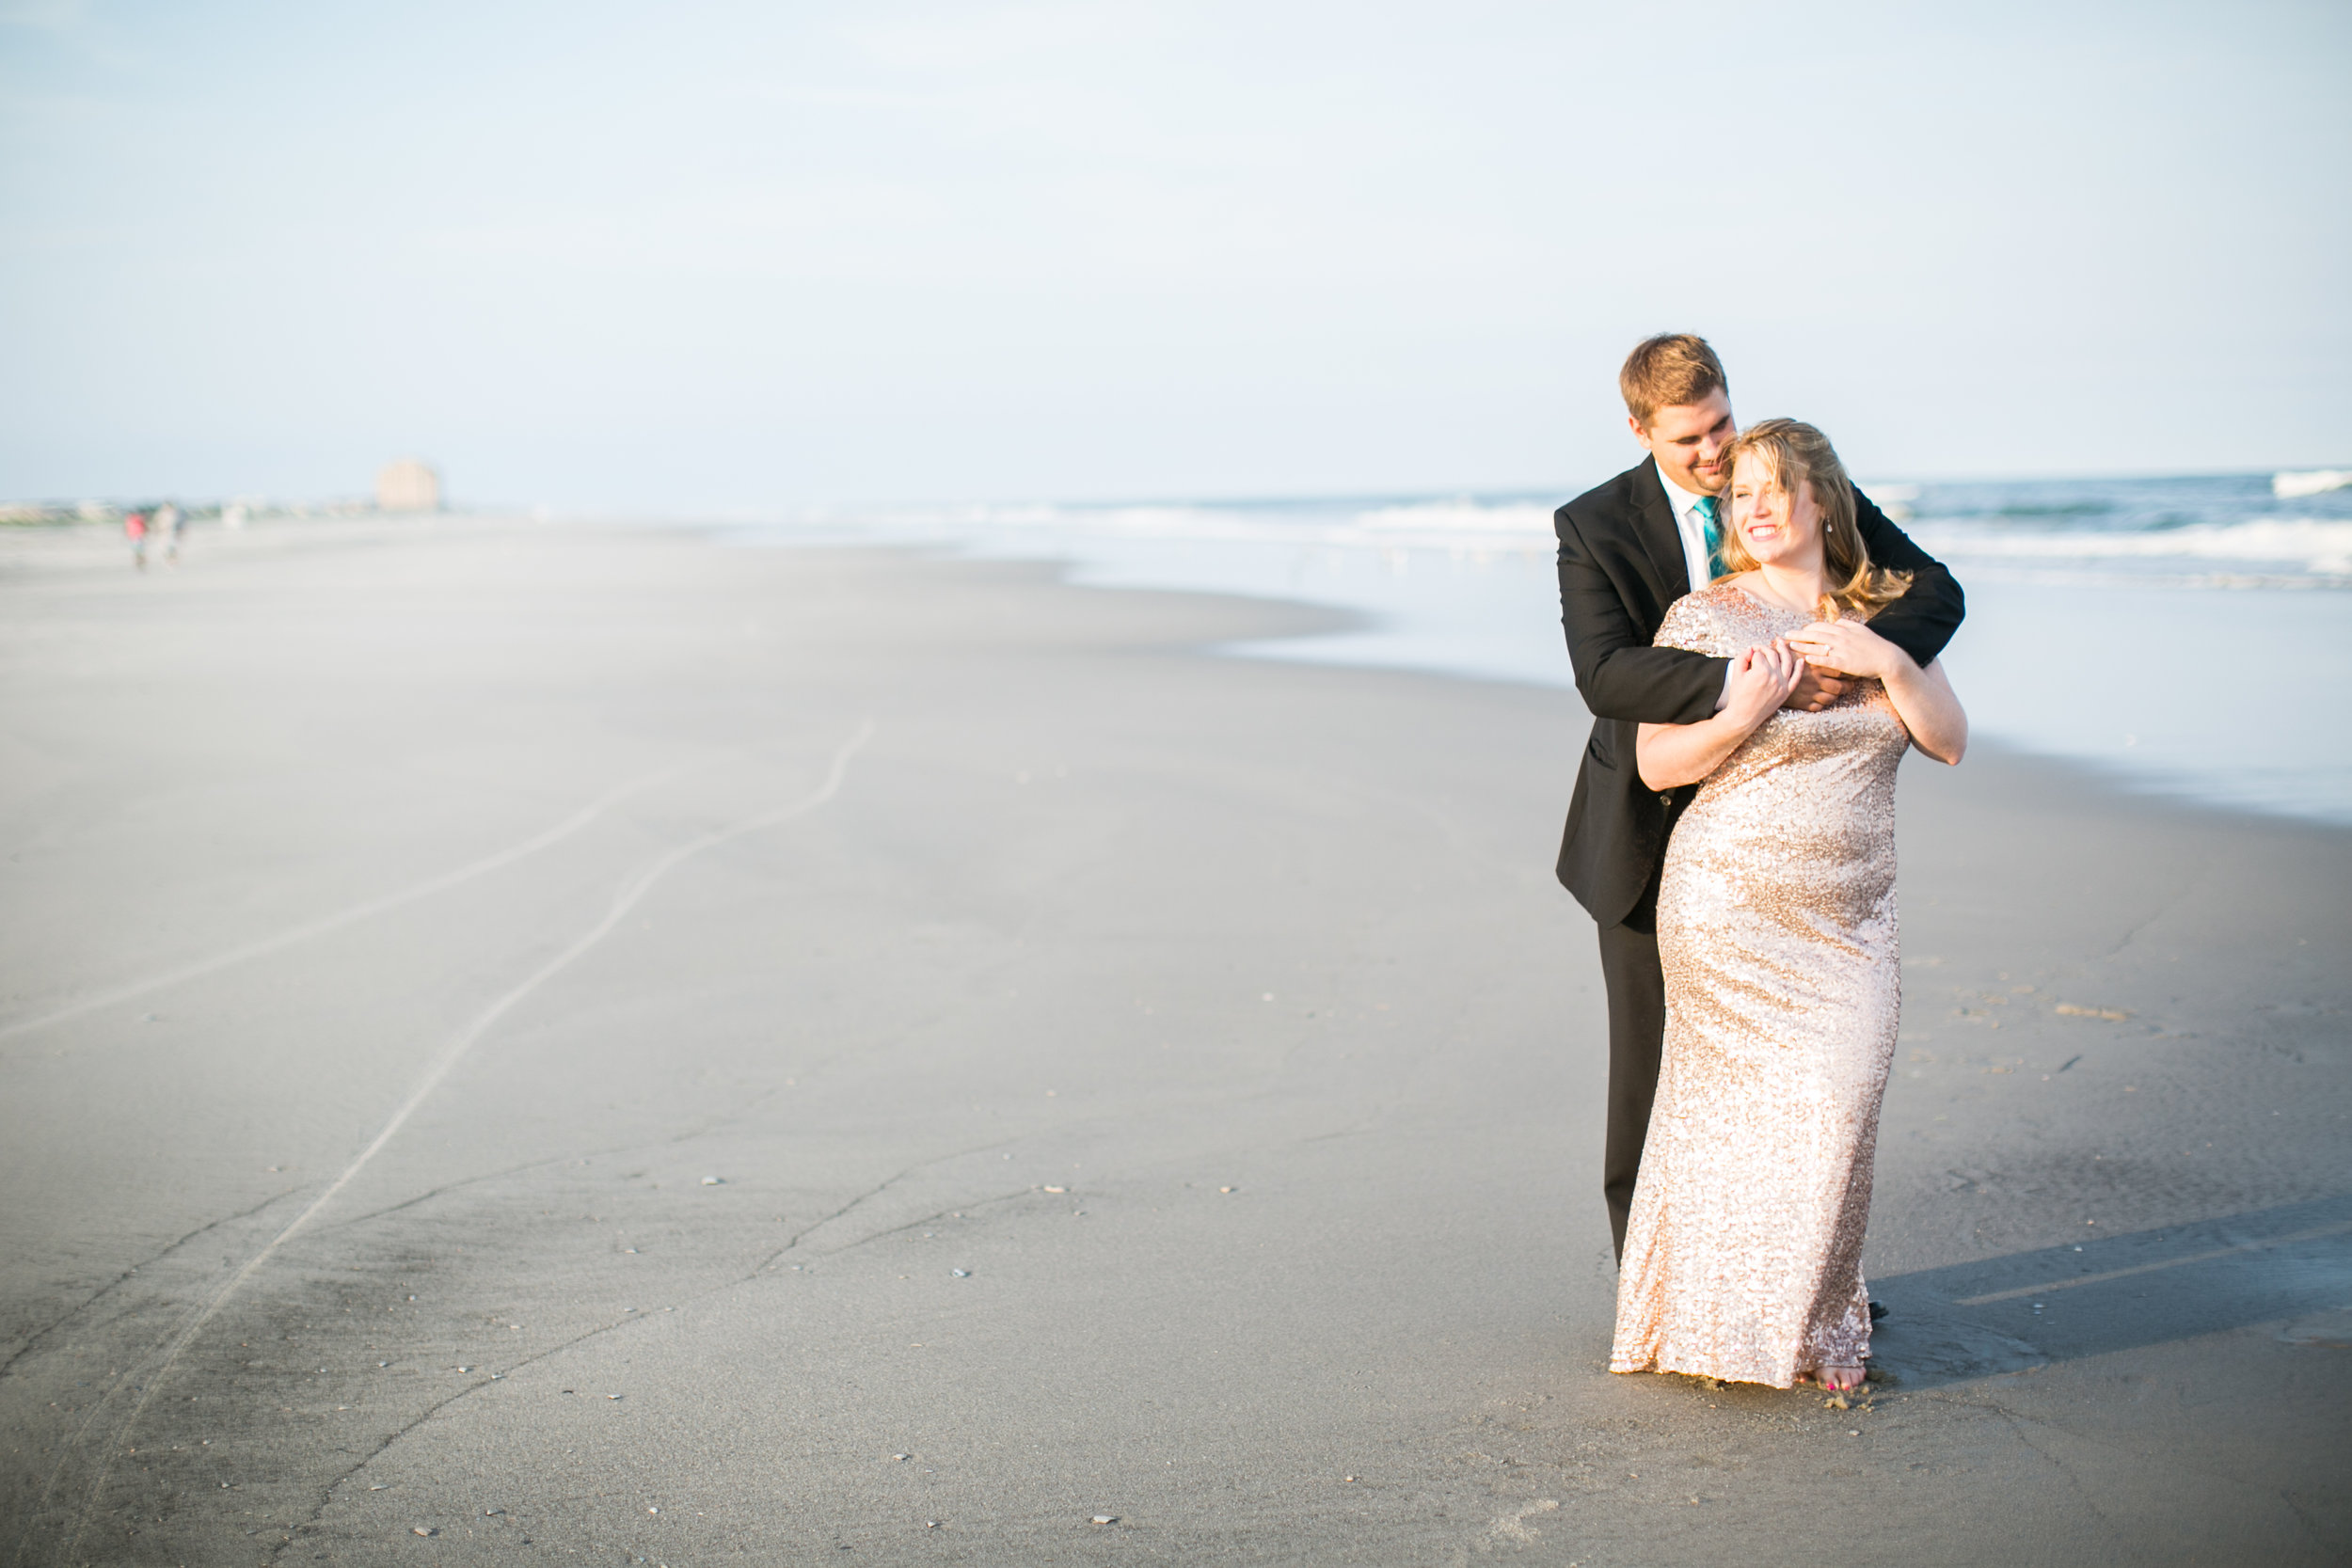 brigintine-atlantic-city-engagement-session-beach-outdoor-nautical-engagement-ocean-water-photos-living-radiant-photography-273.jpg